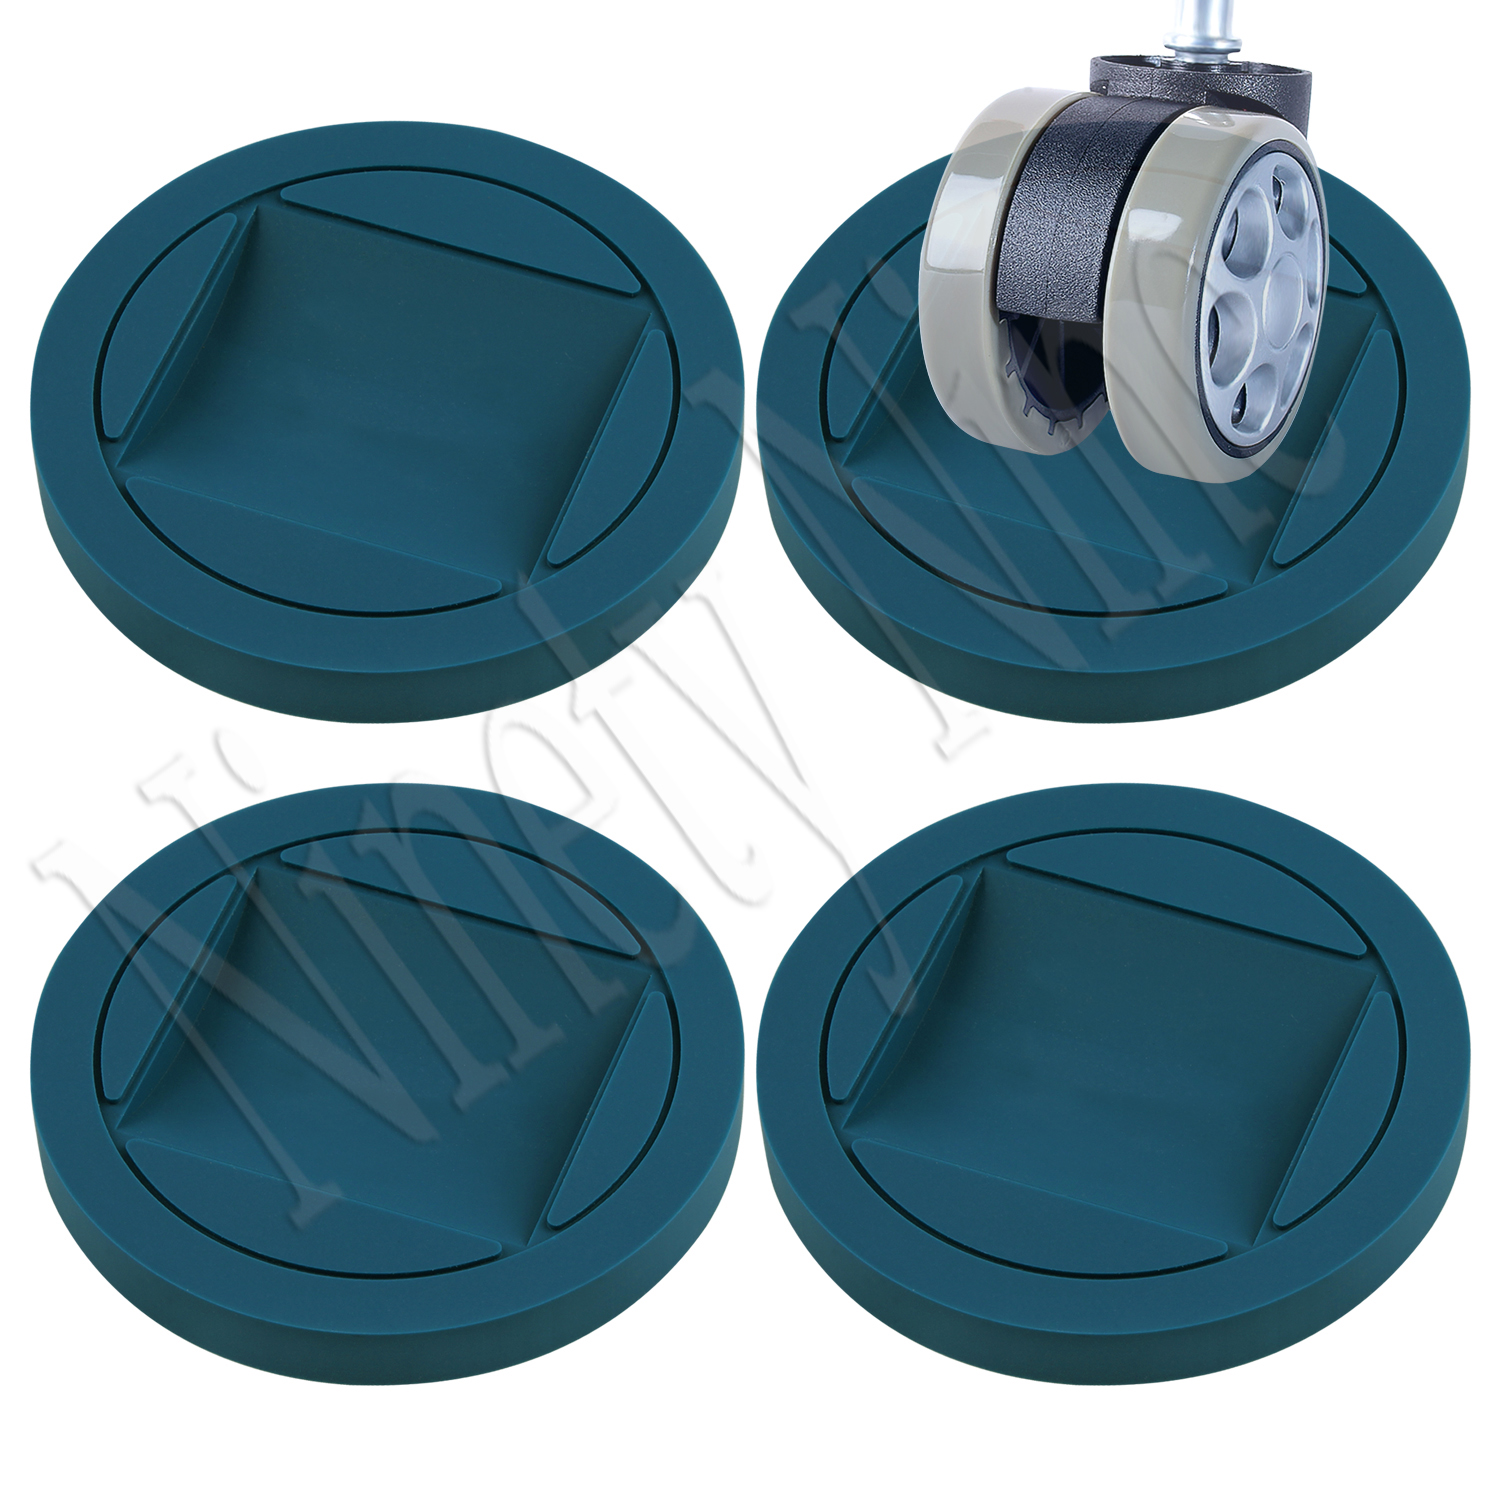 Piano Caster Cups Set of 4 Furniture Leg Pads Protection ABS Transparent